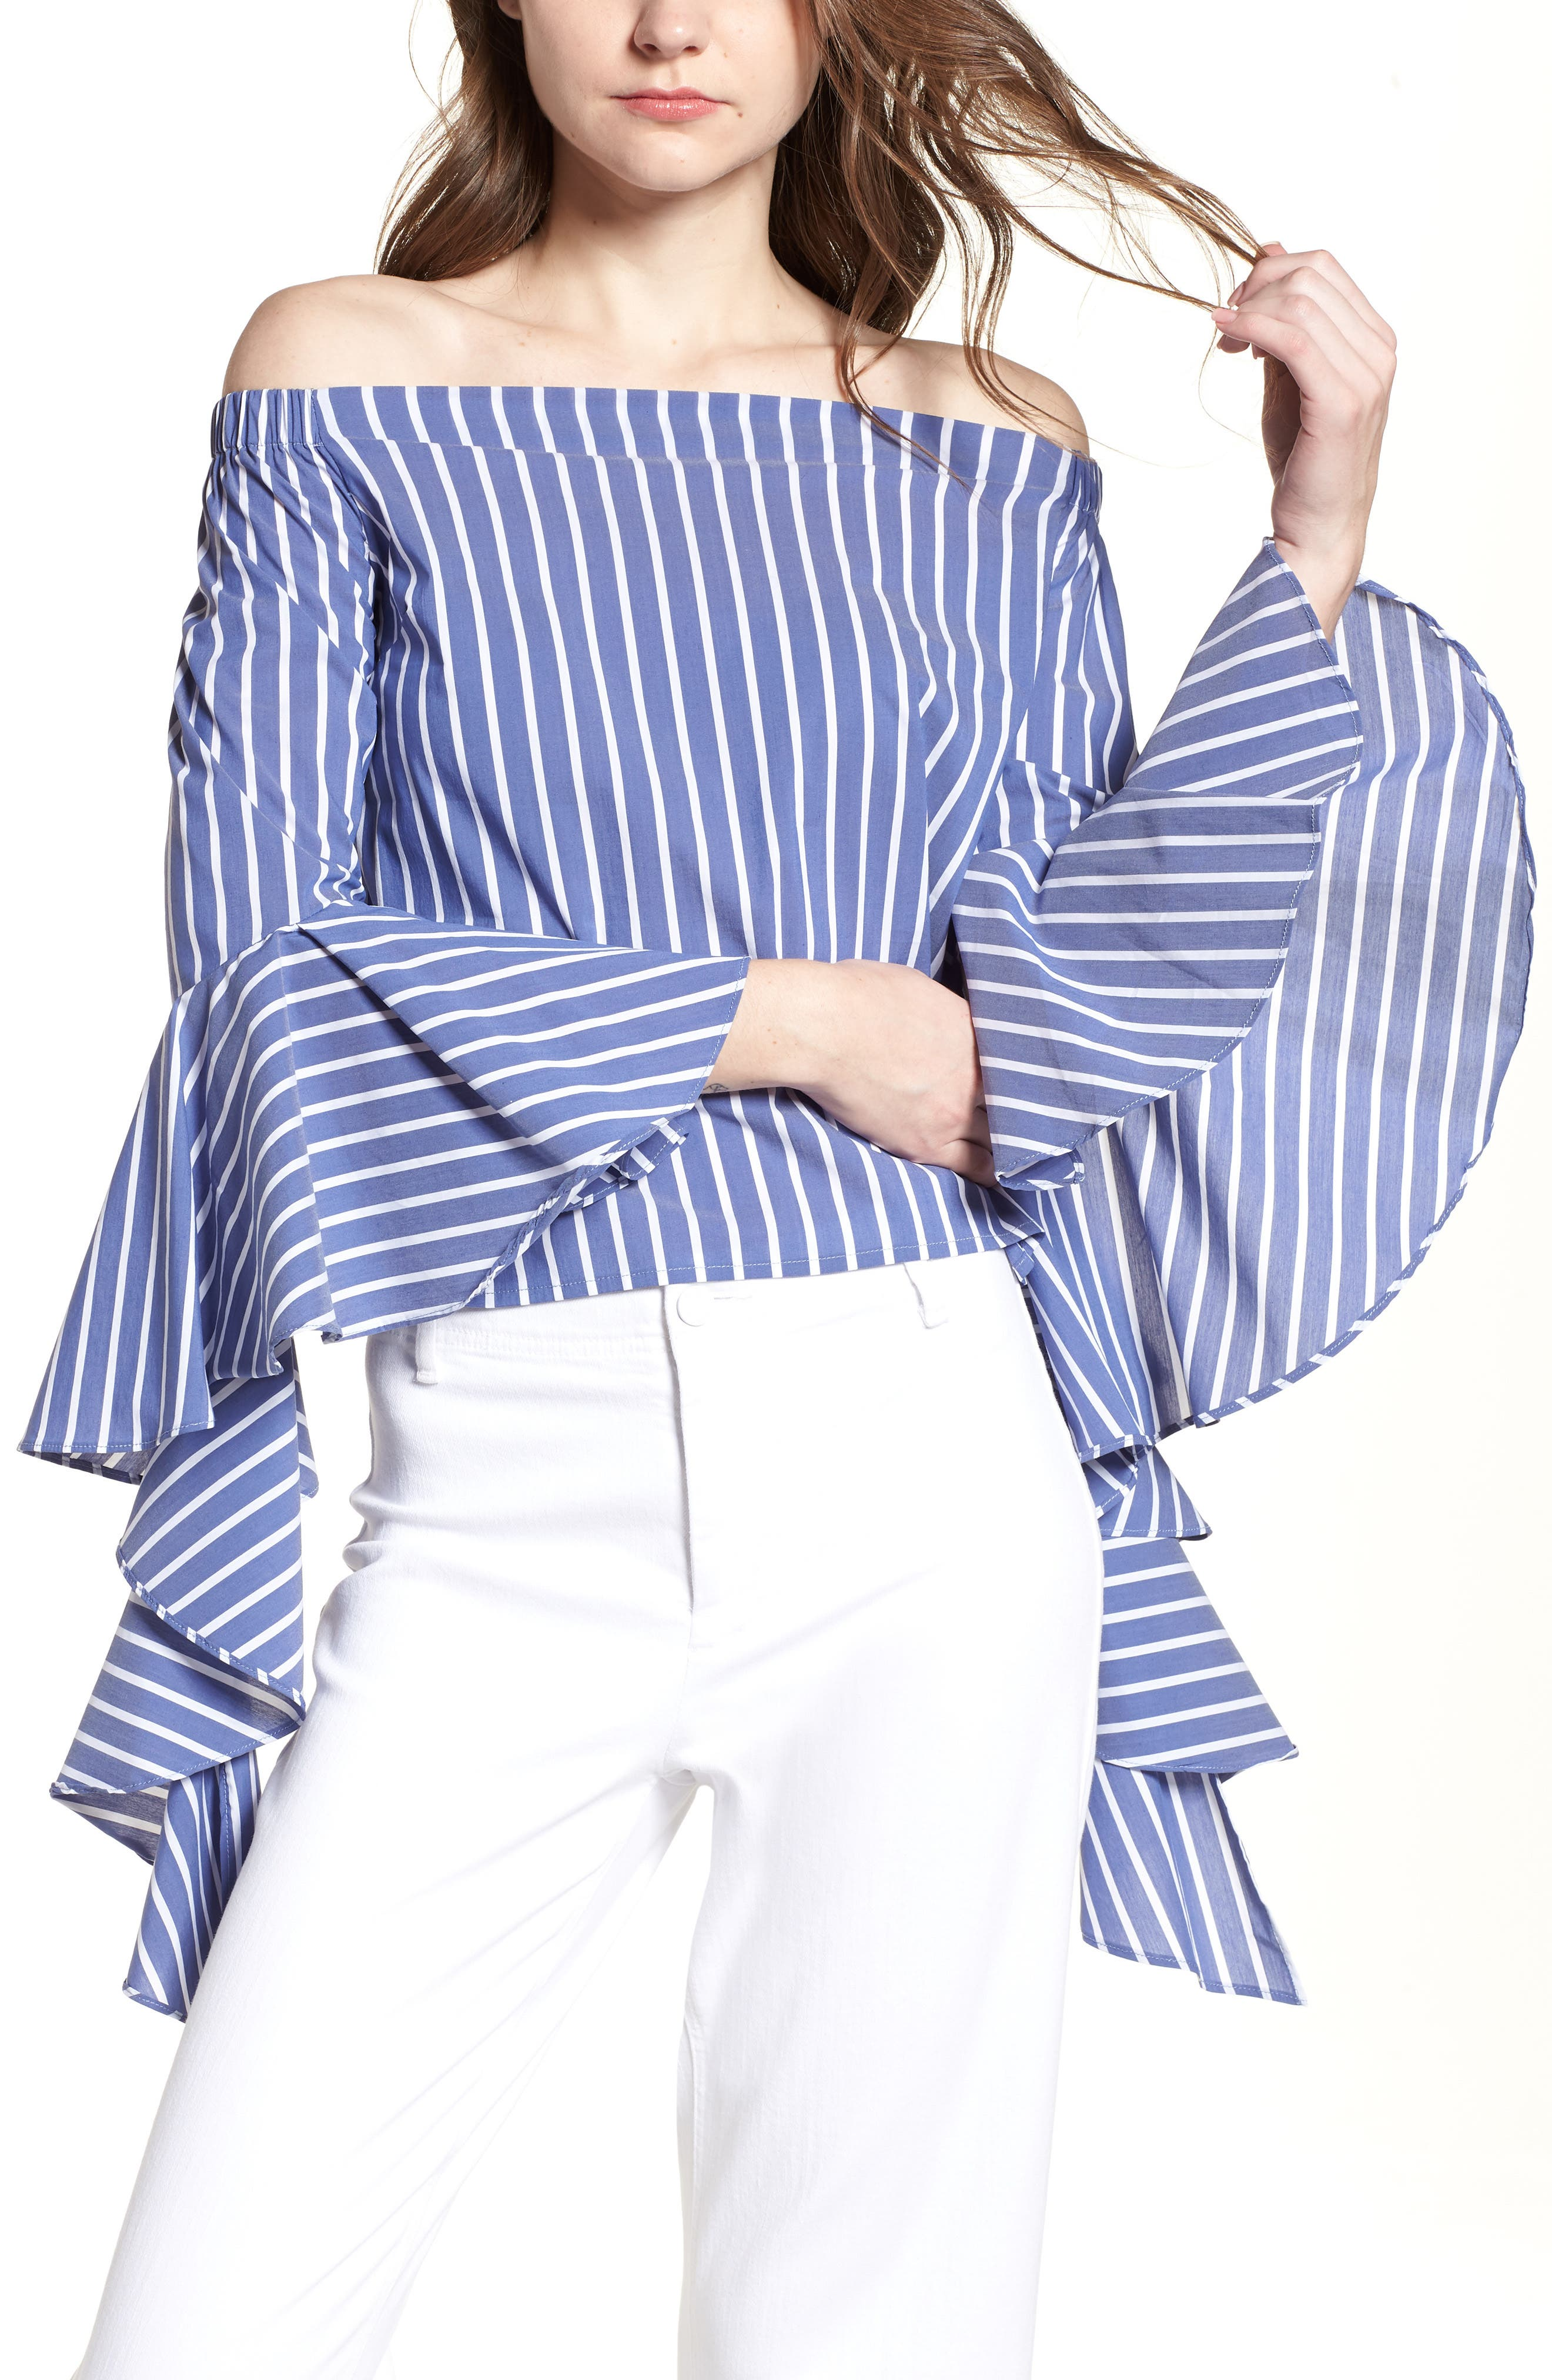 Bishop + Young Gigi Ruffle Sleeve Off the Shoulder Top,                             Main thumbnail 1, color,                             BLUE WHITE STRIPE